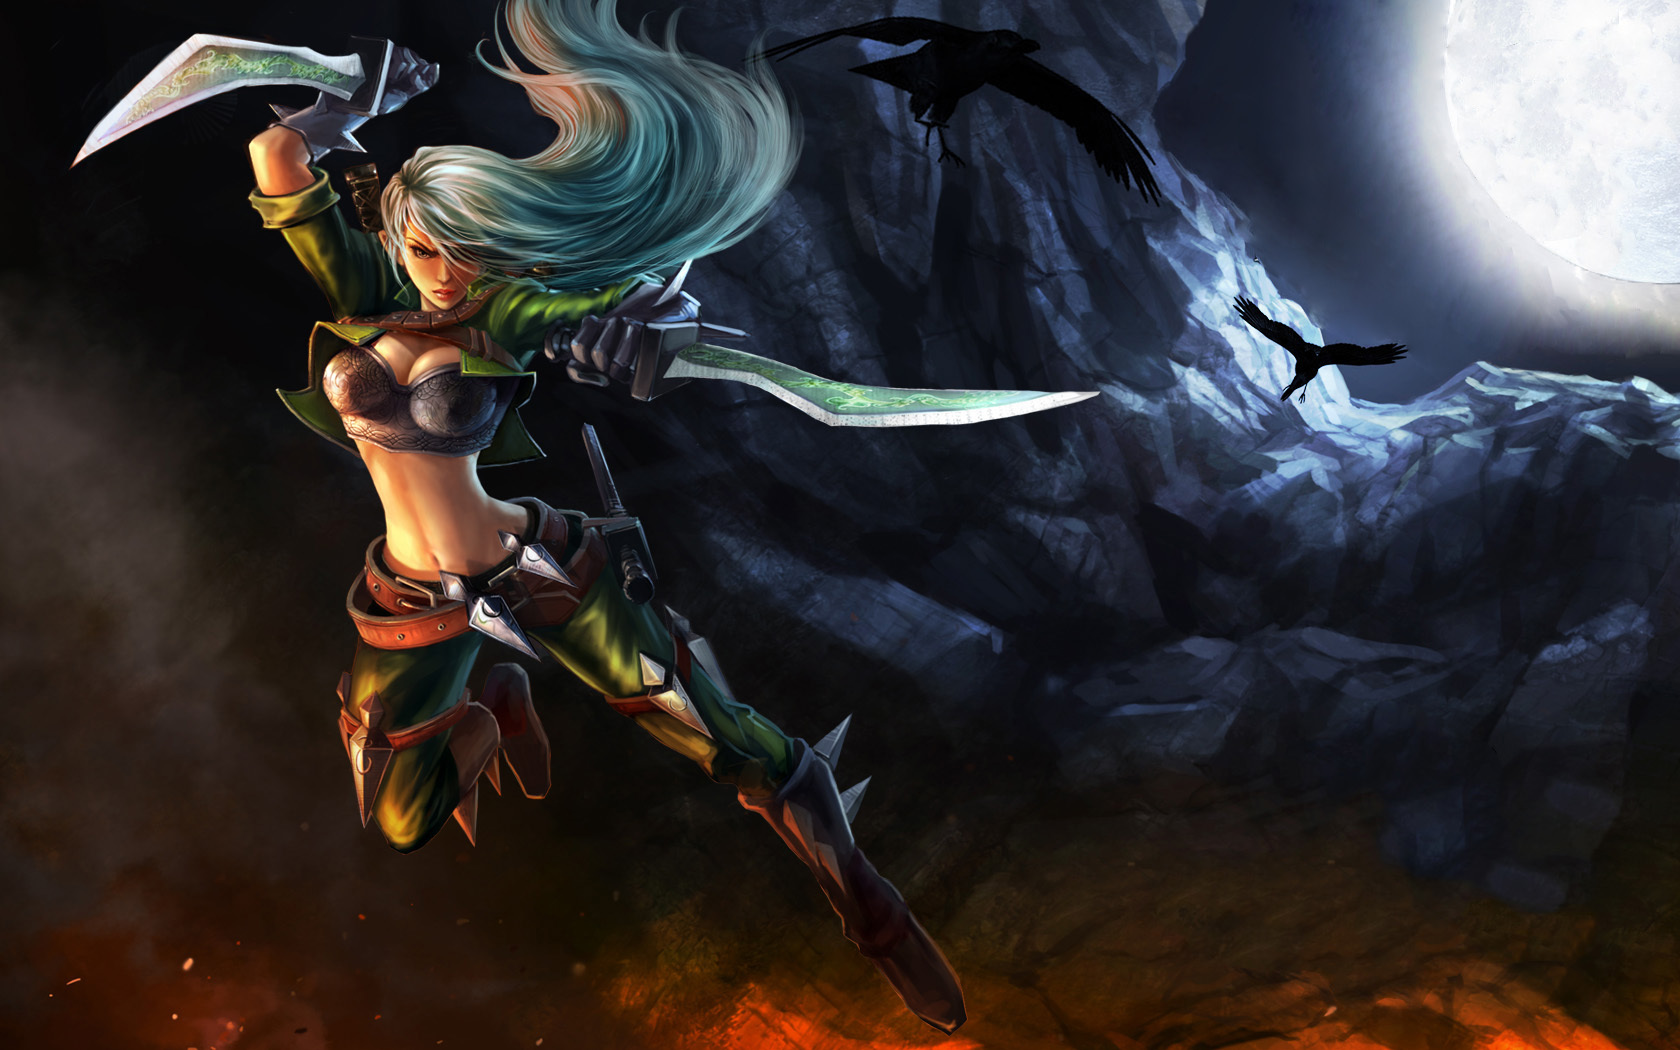 League of Legends Res: 1680x1050 / Size:410kb. Views: 606976